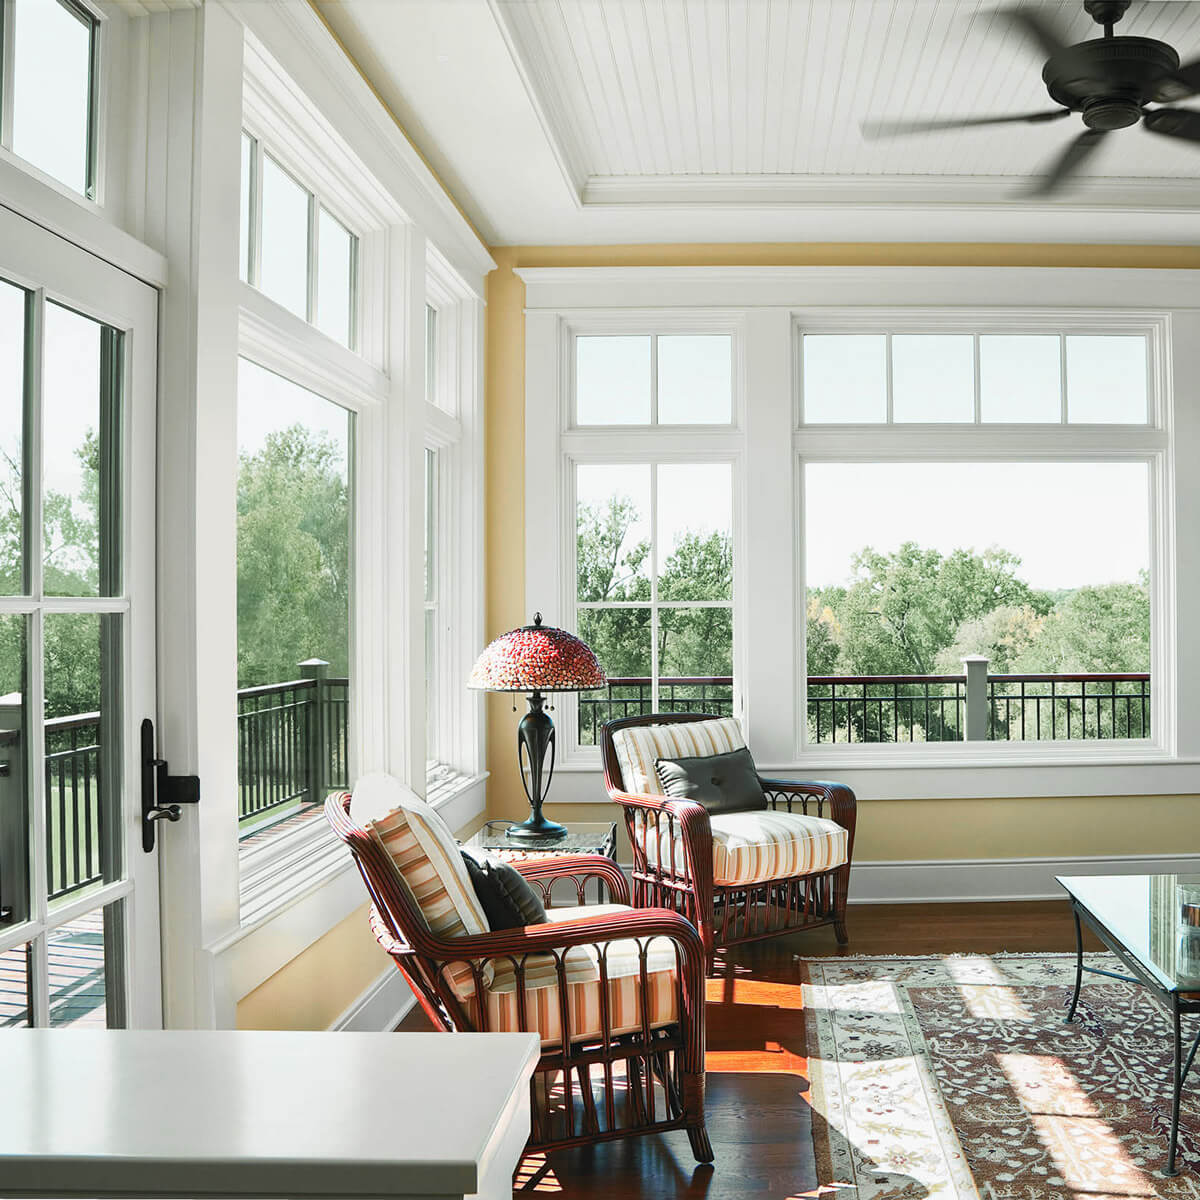 Andersen Windows A-series casement windows, picture windows, and hinged patio door in 4-season porch addition